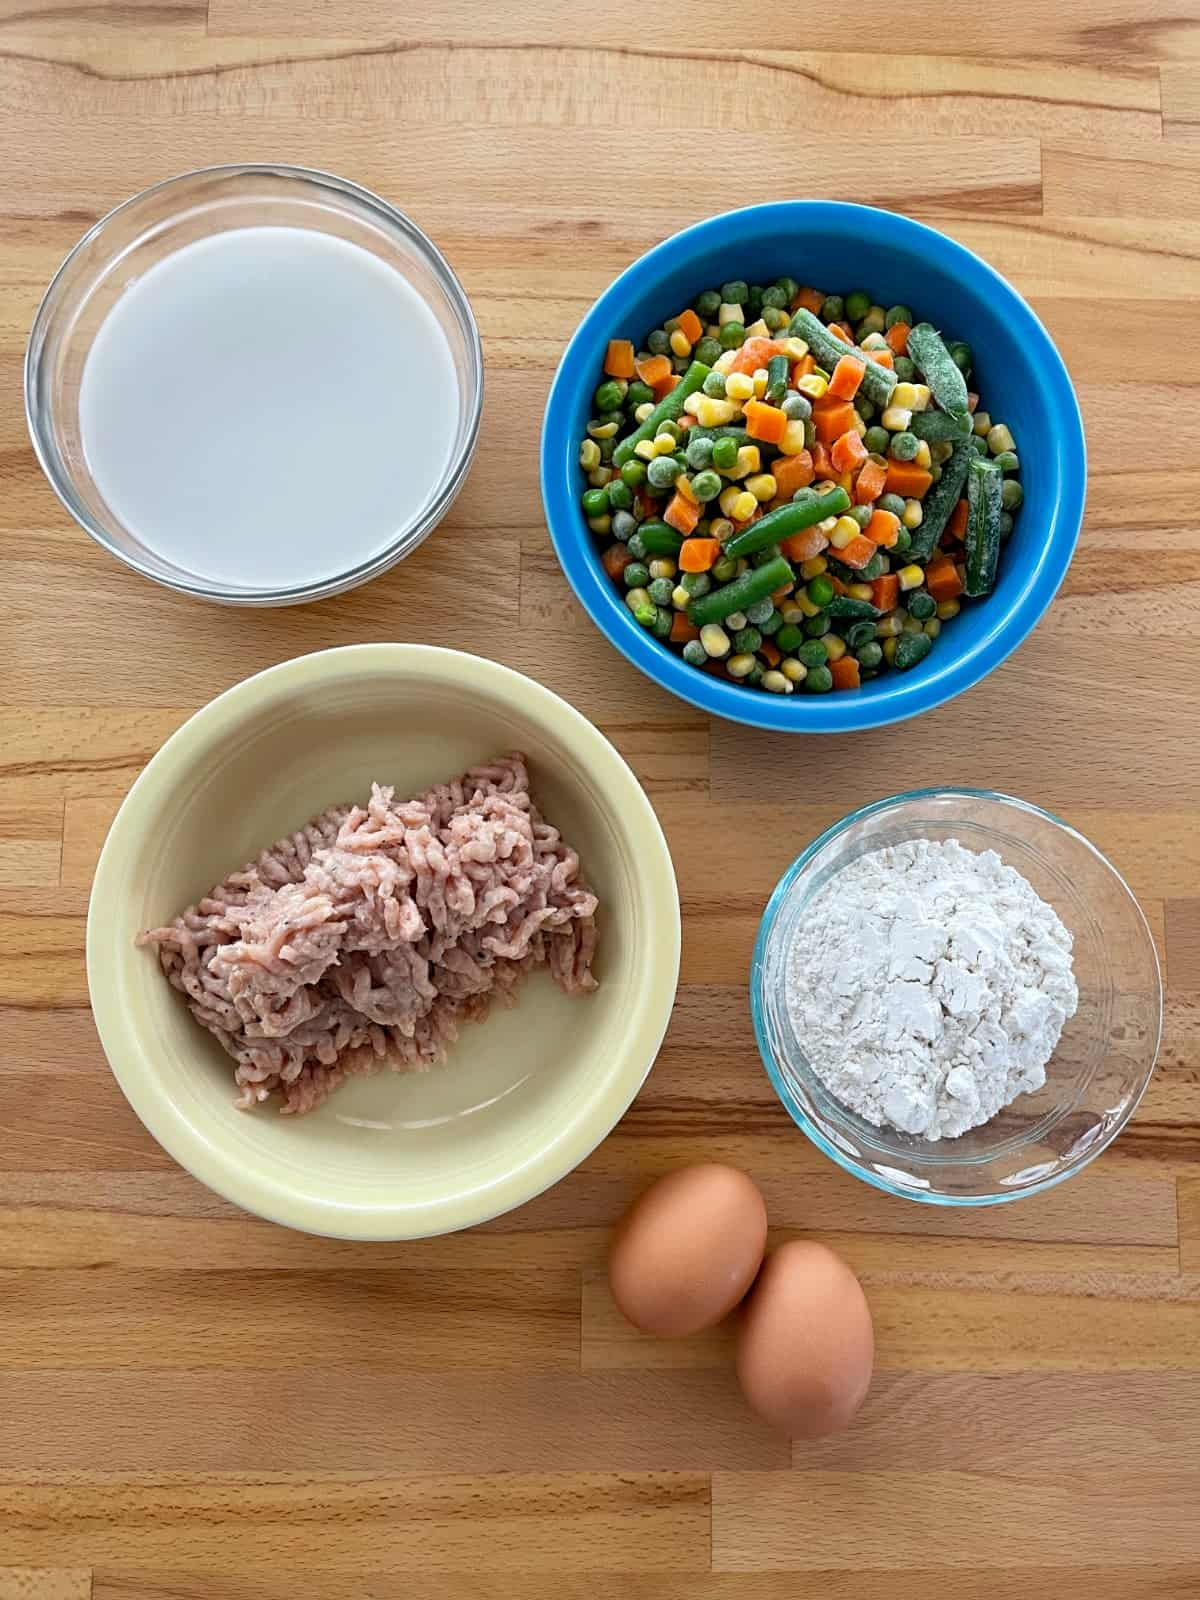 Ingredients for making Impossible Sausage Pie including milk, frozen vegetables, bulk chicken sausage, Bisquick and two eggs on wooden table.